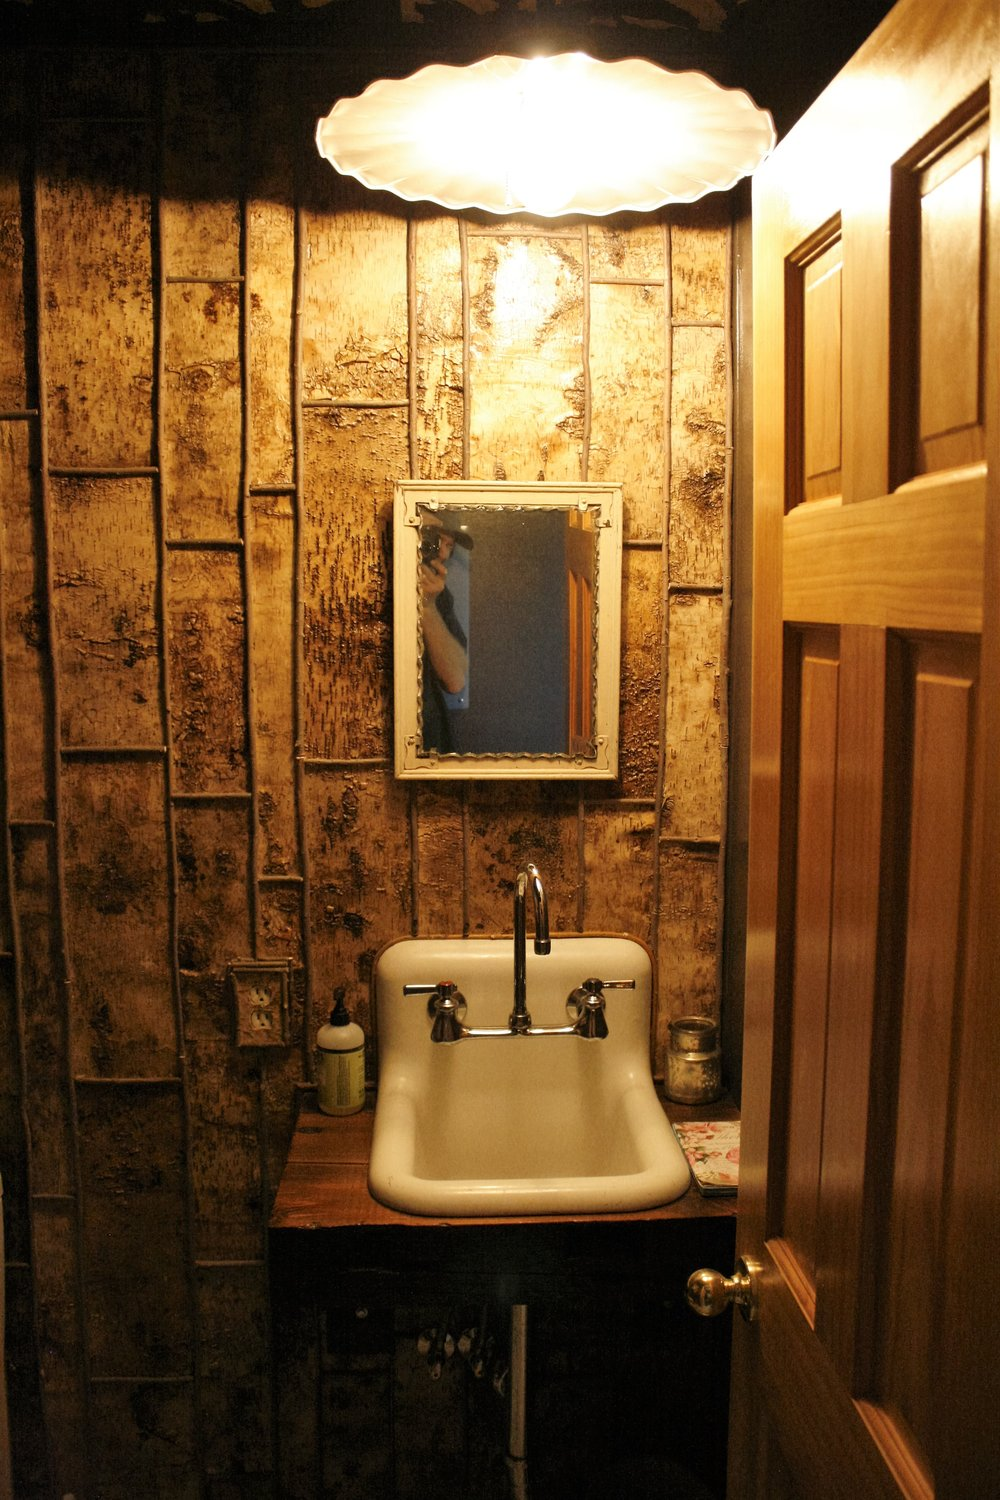 Custom made vanity, birch strip wall covering, on property willow branch trim, and vintage light install